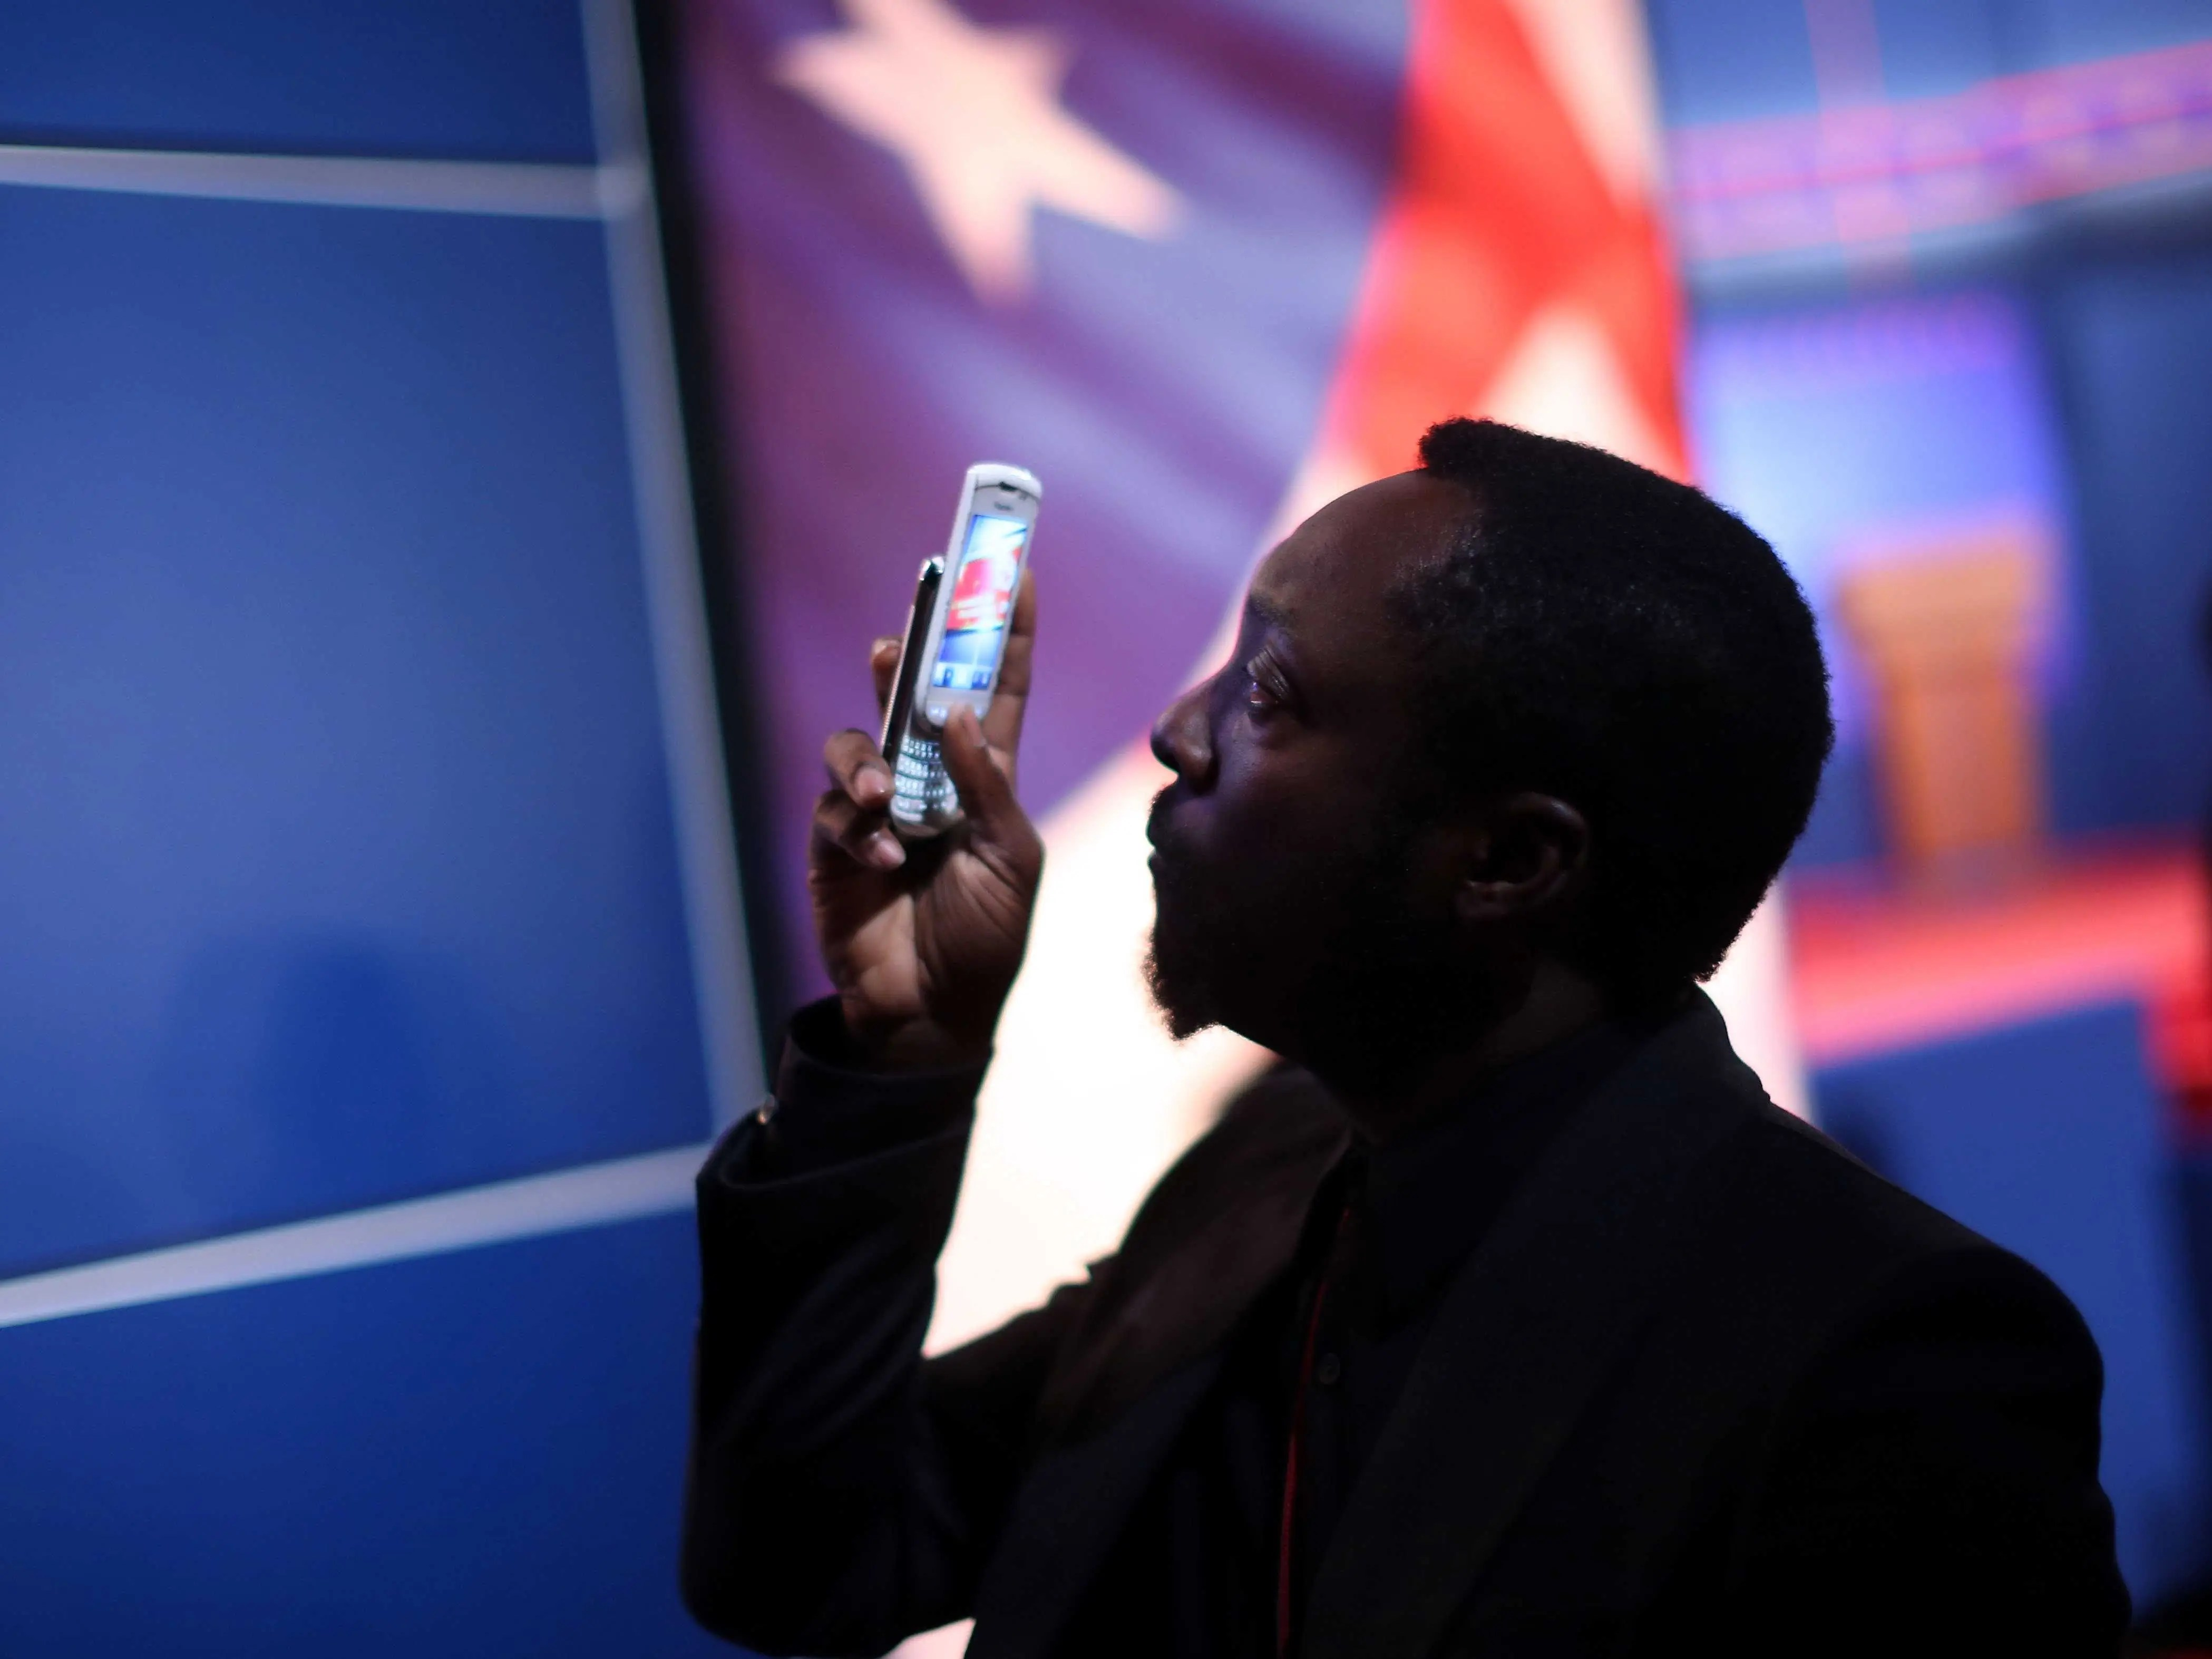 Oct. 3, 2012: Will.i.am takes a picture on his BlackBerry Torch prior to the Presidential Debate at the University of Denver.